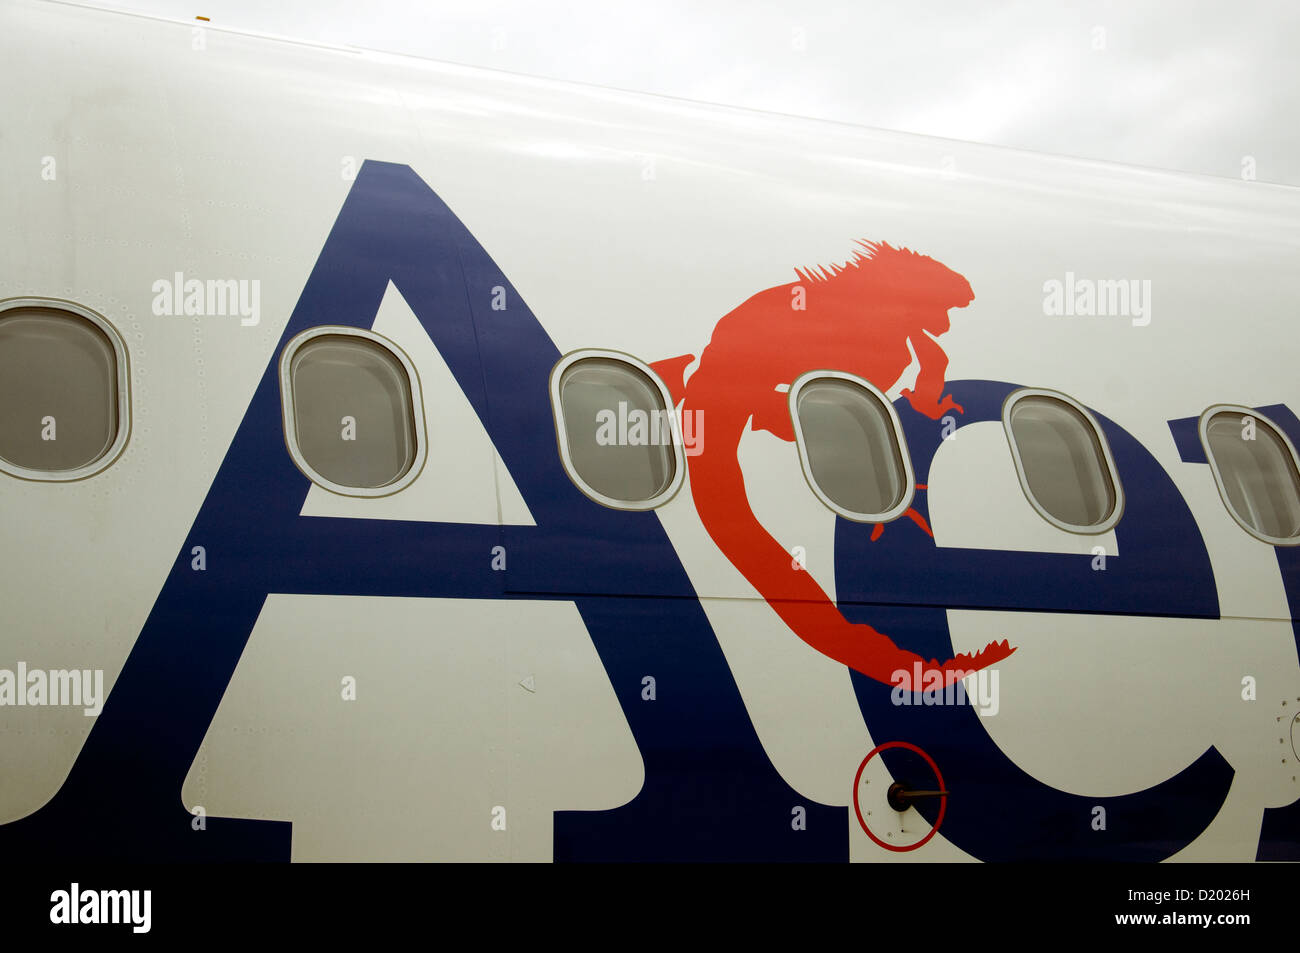 Iguanas, dominant image of Ecuador's Galapagos islands, adorn the paintwork of the local domestic airline Aerogal - Stock Image